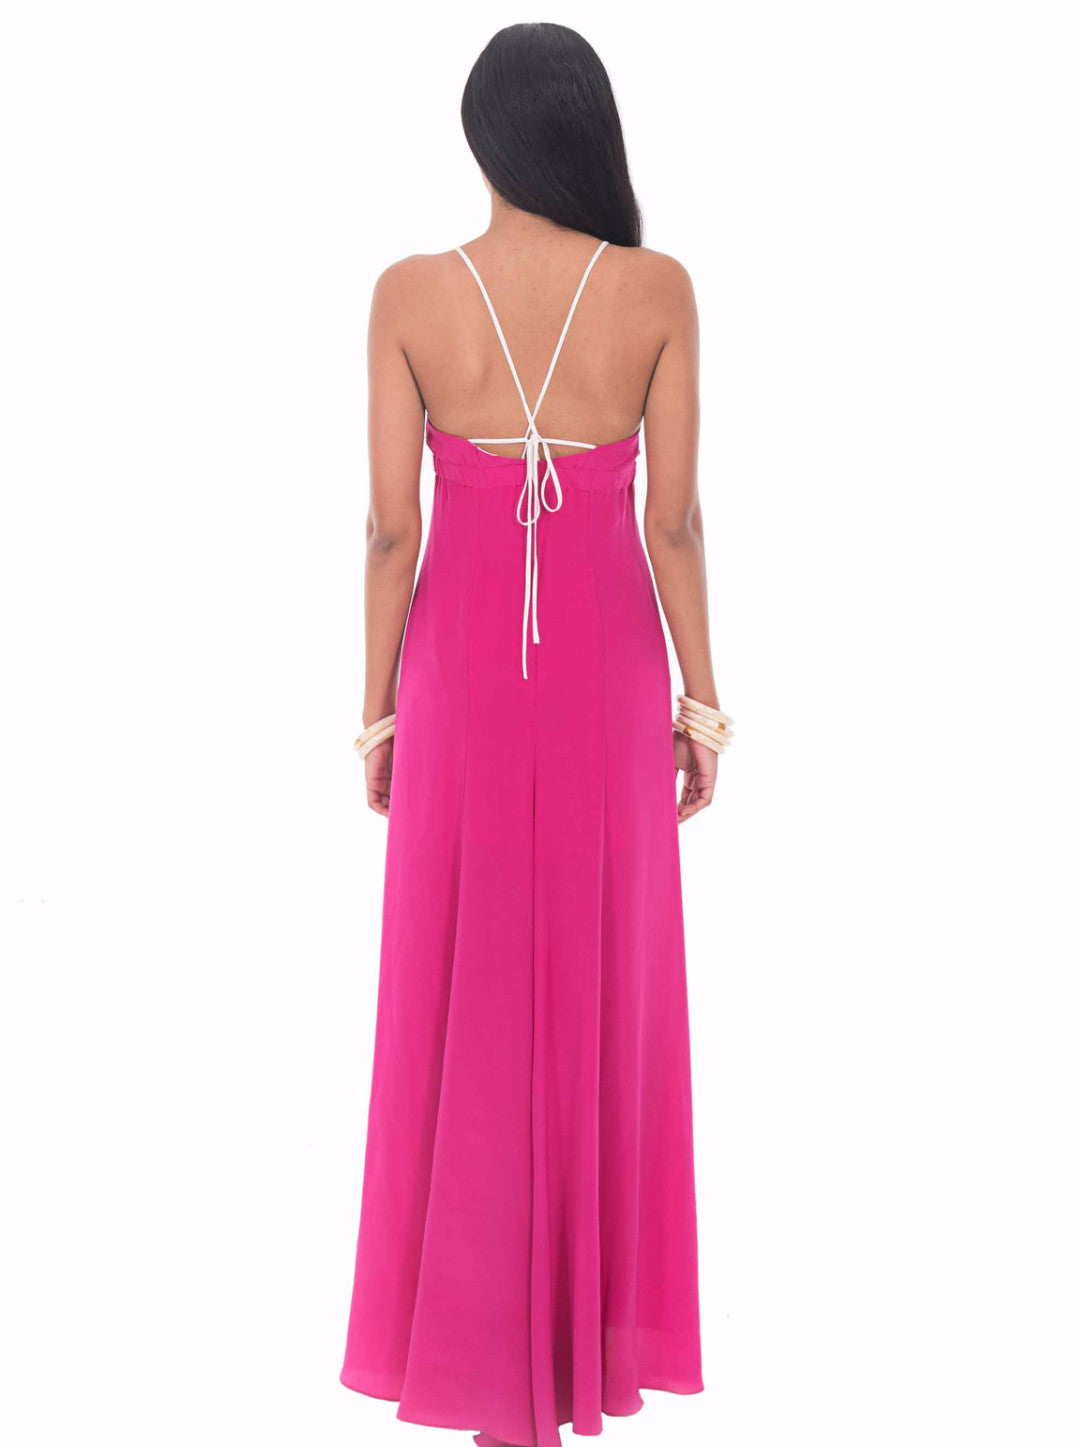 Pink Sail Silk Maxi Dress by Isy B. Design - Back View on Model